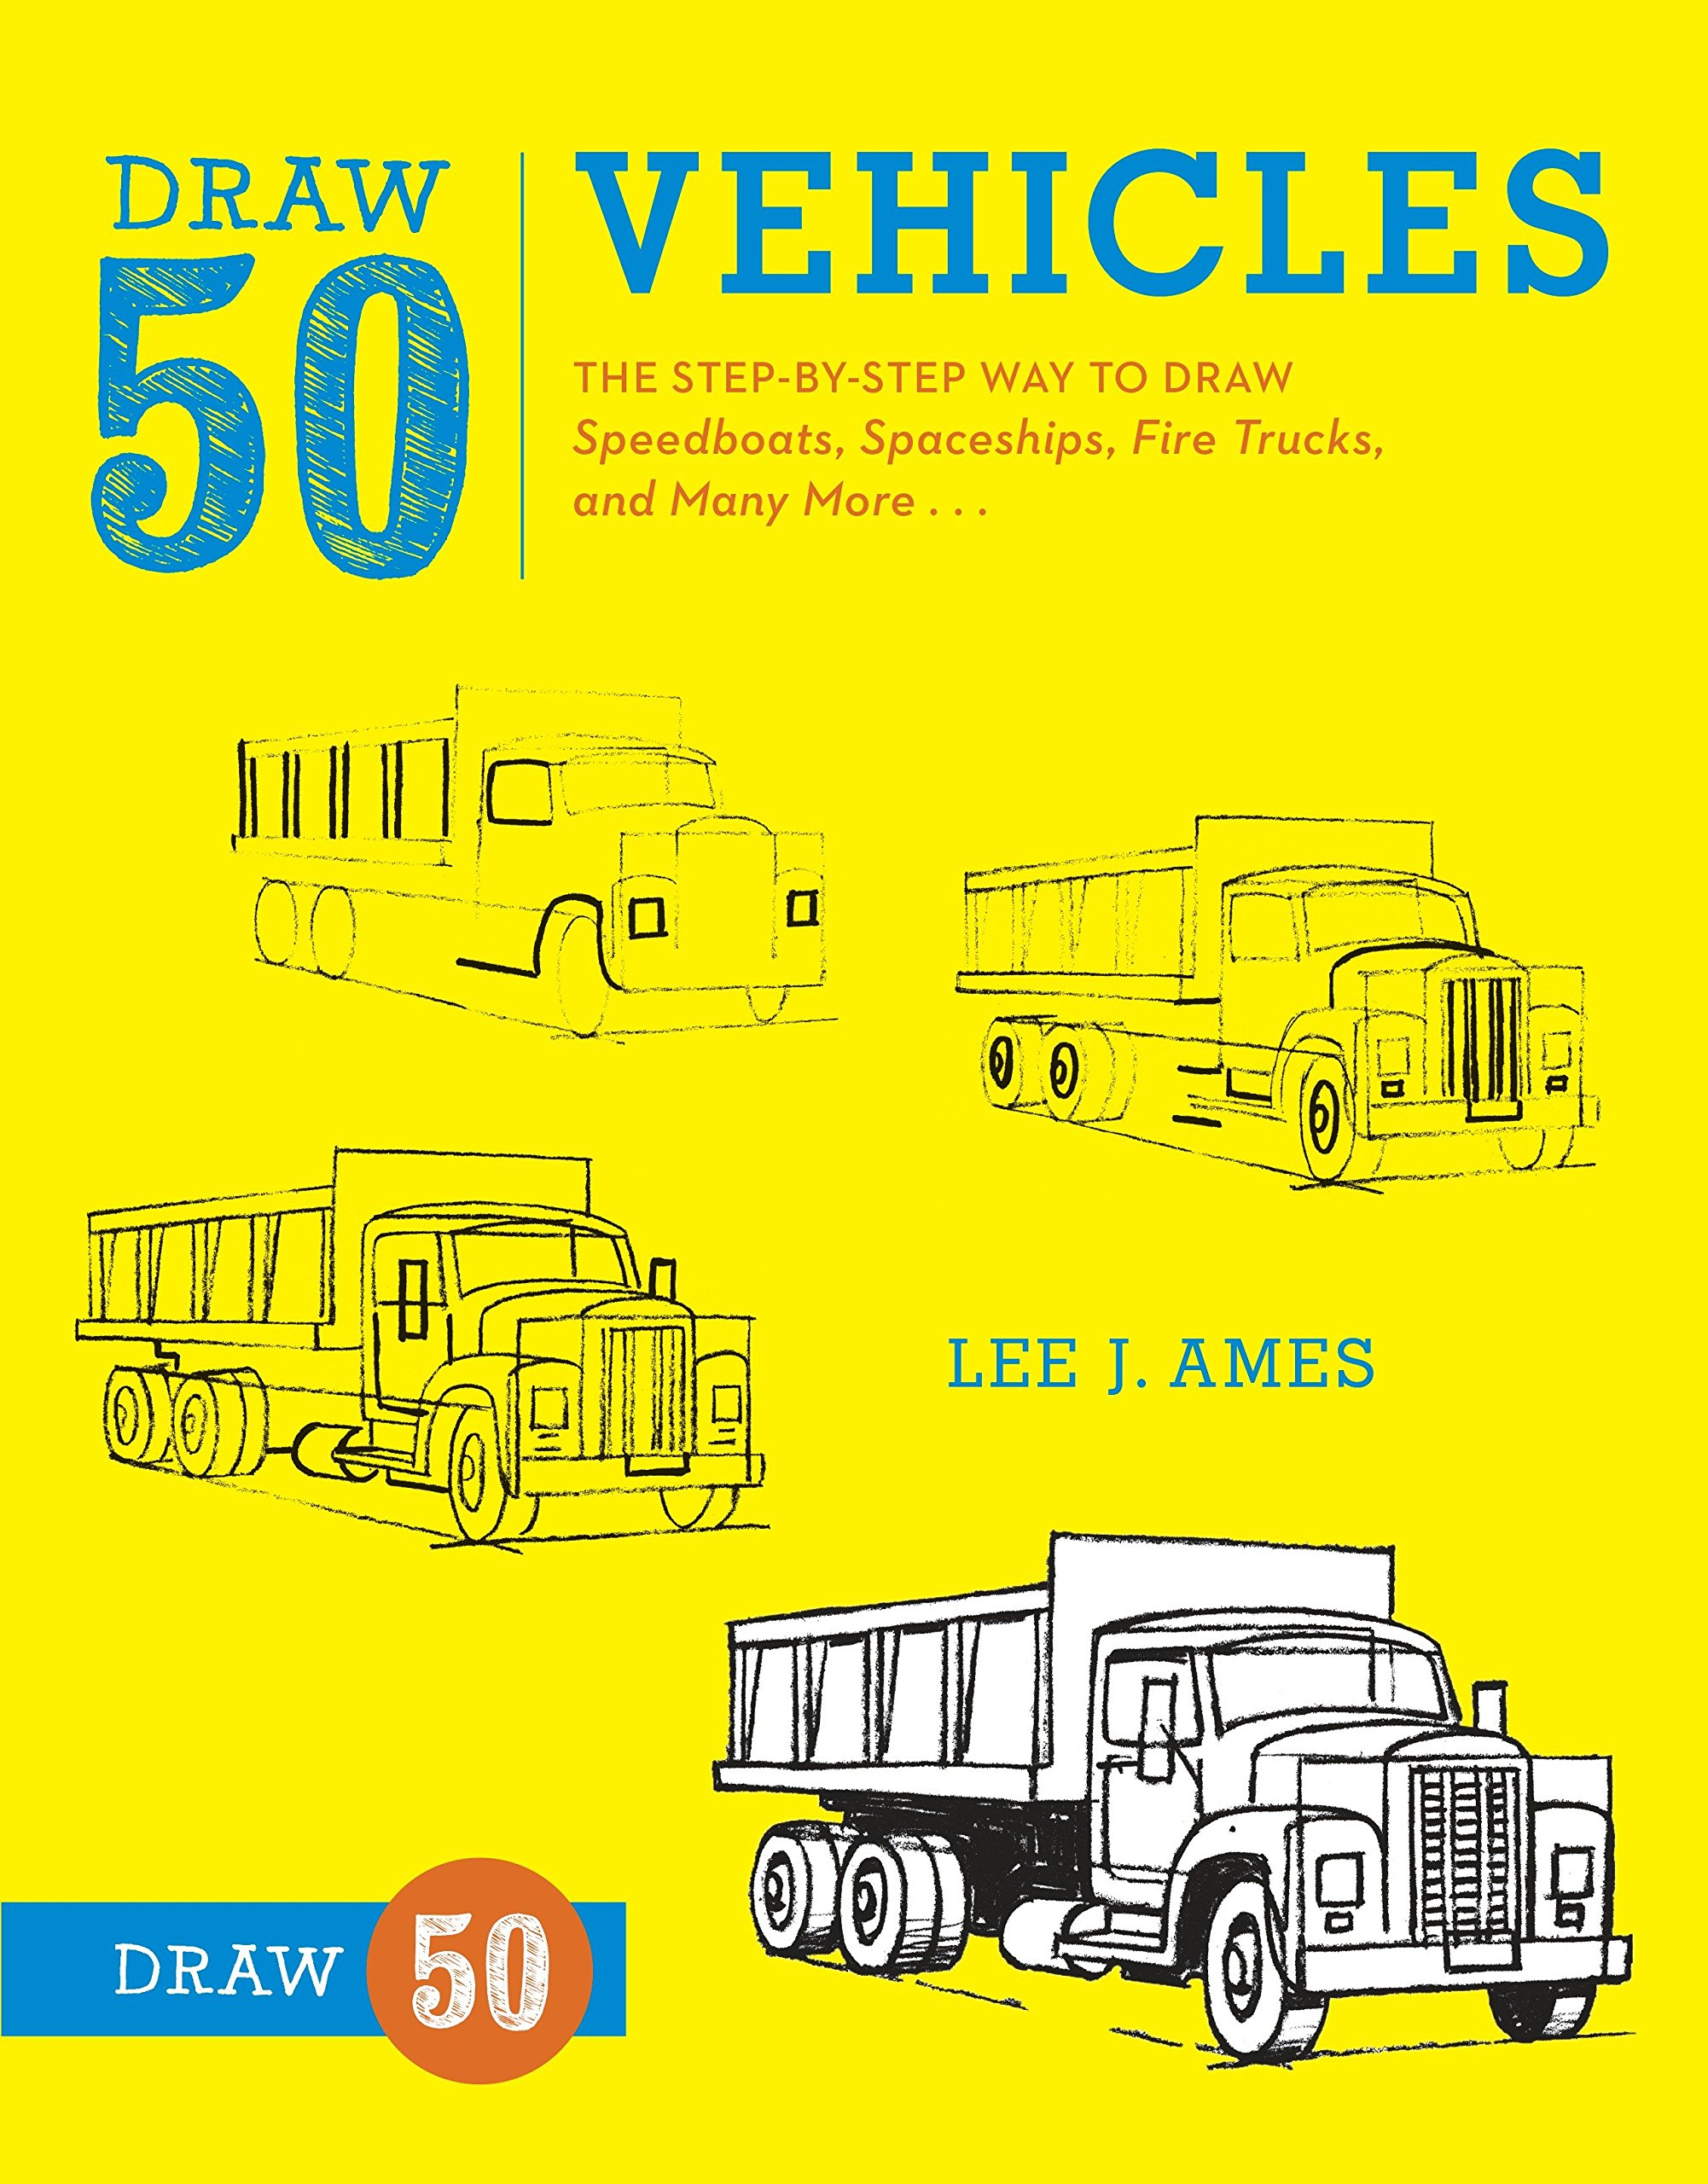 Read Online Draw 50 Vehicles: The Step-by-Step Way to Draw Speedboats, Spaceships, Fire Trucks, and Many More... ePub fb2 ebook